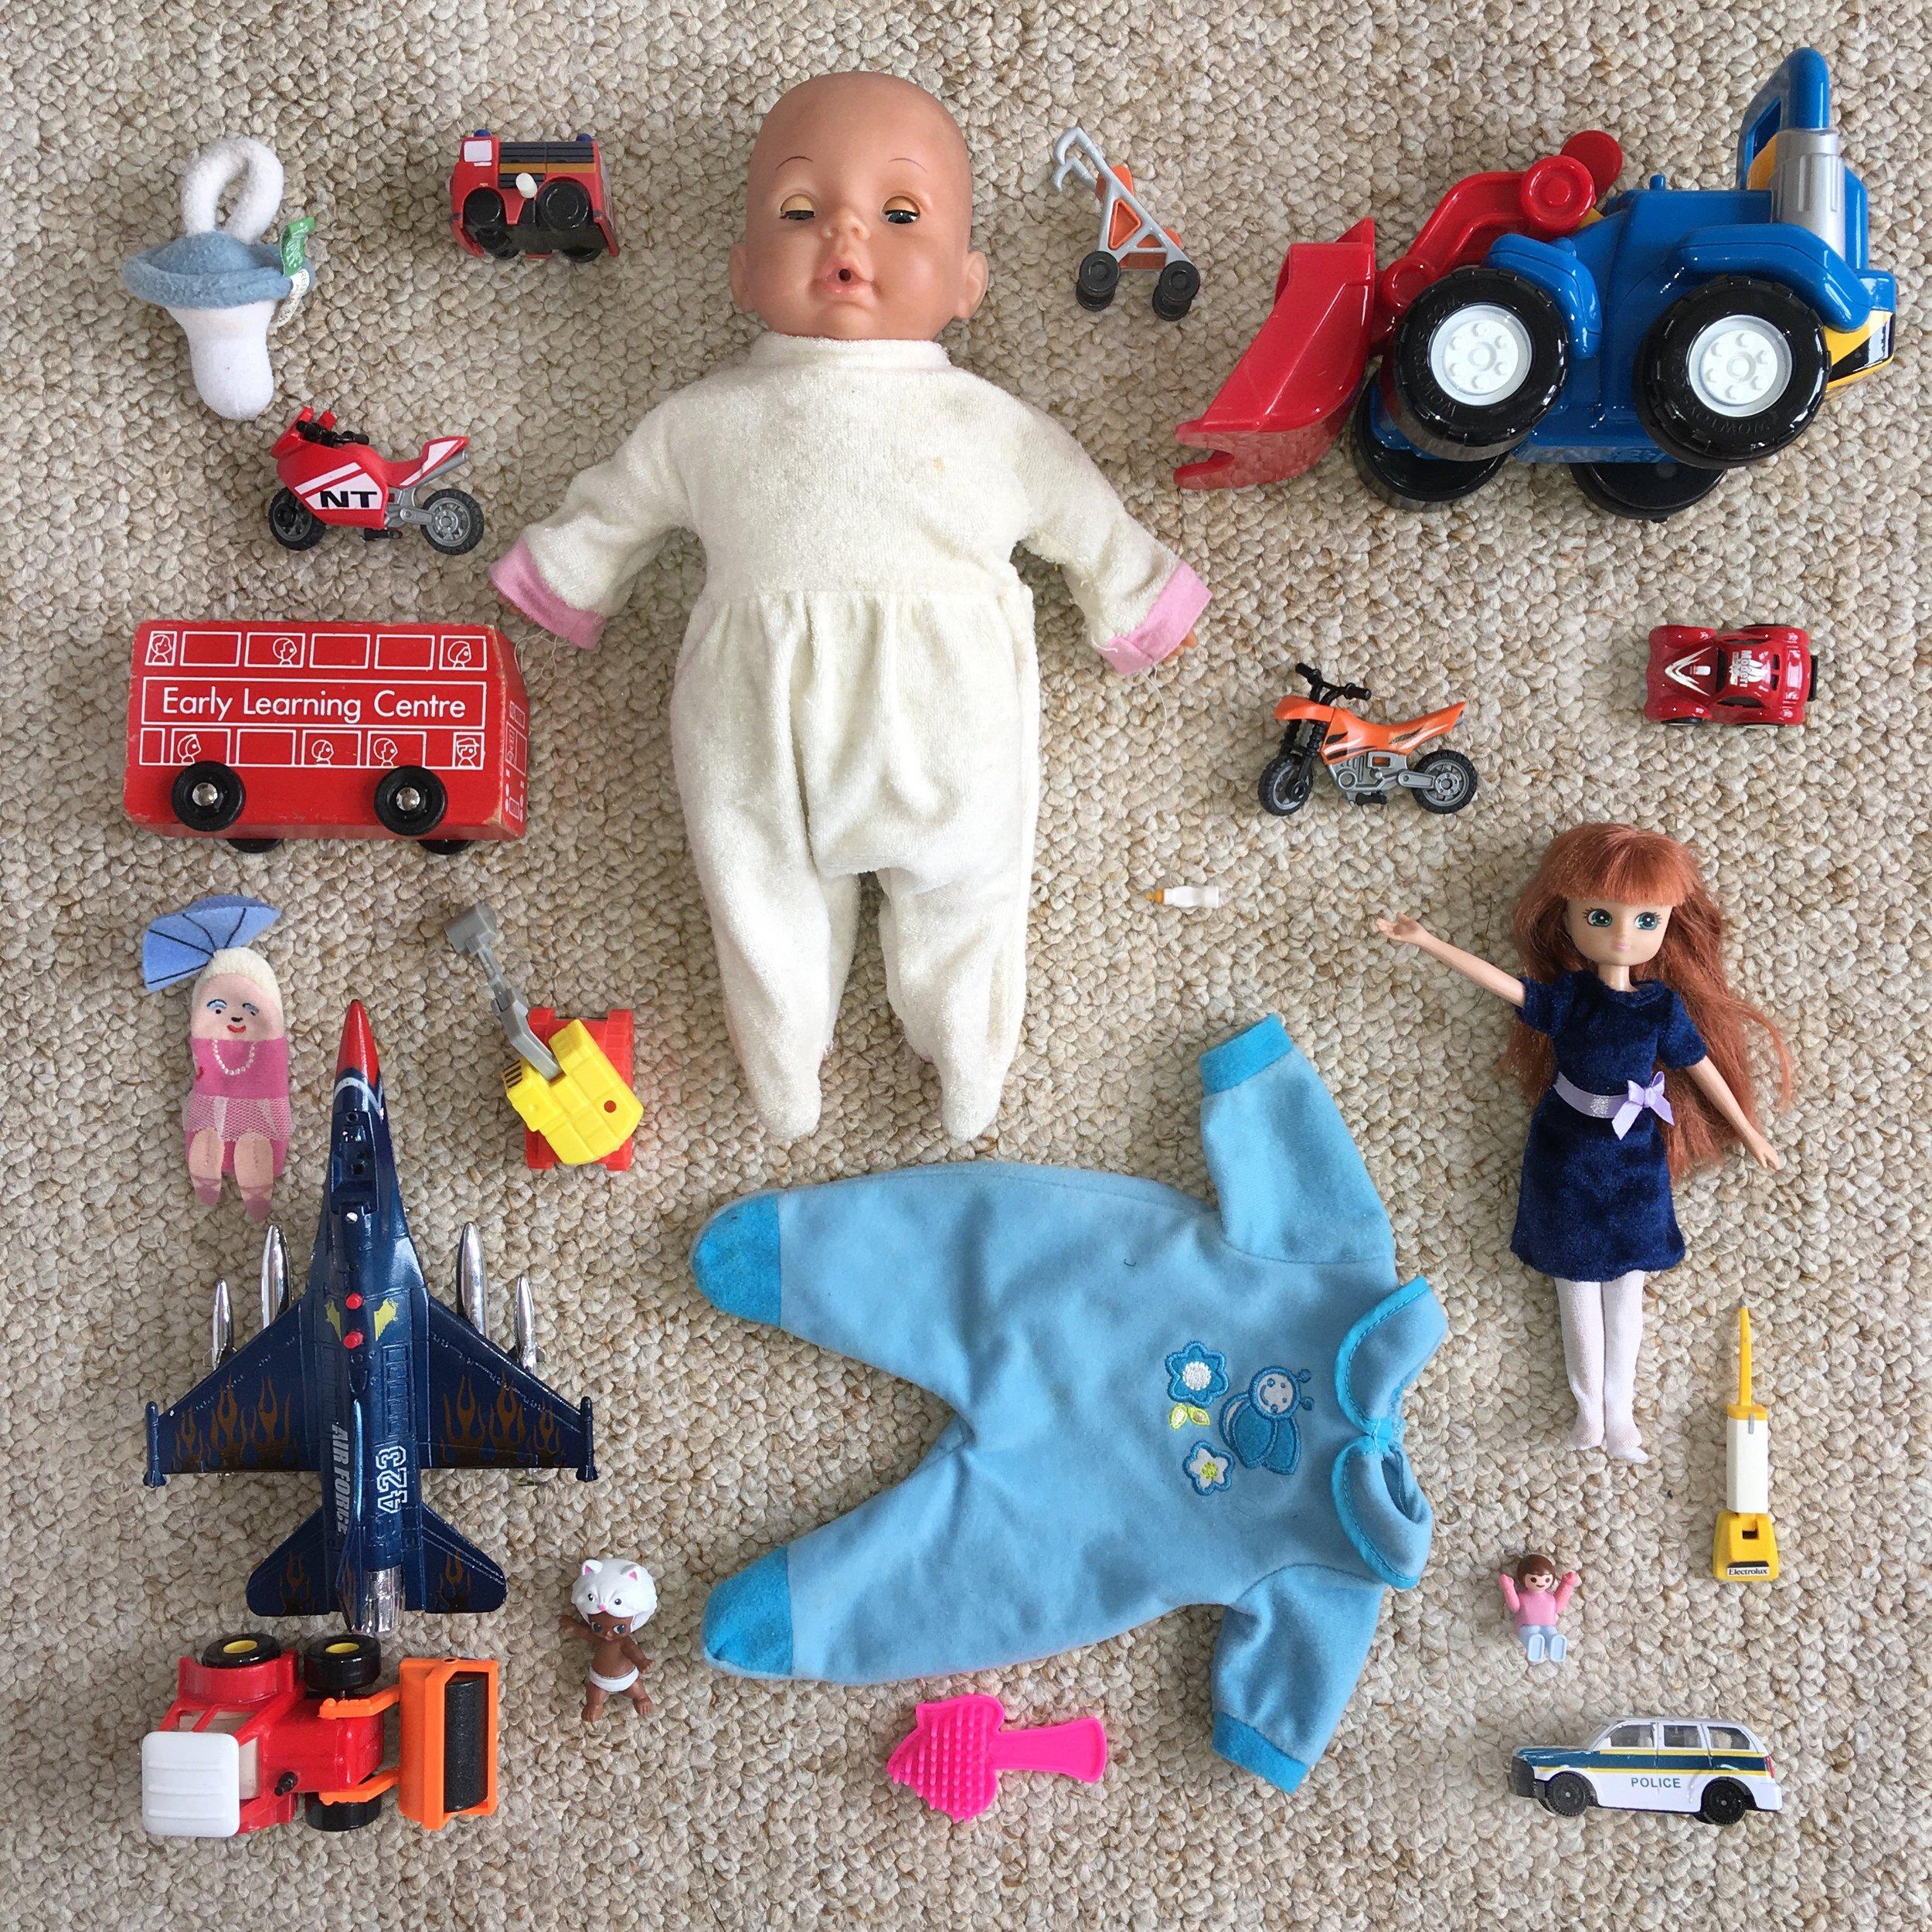 dolls and diggers flatlay.jpg